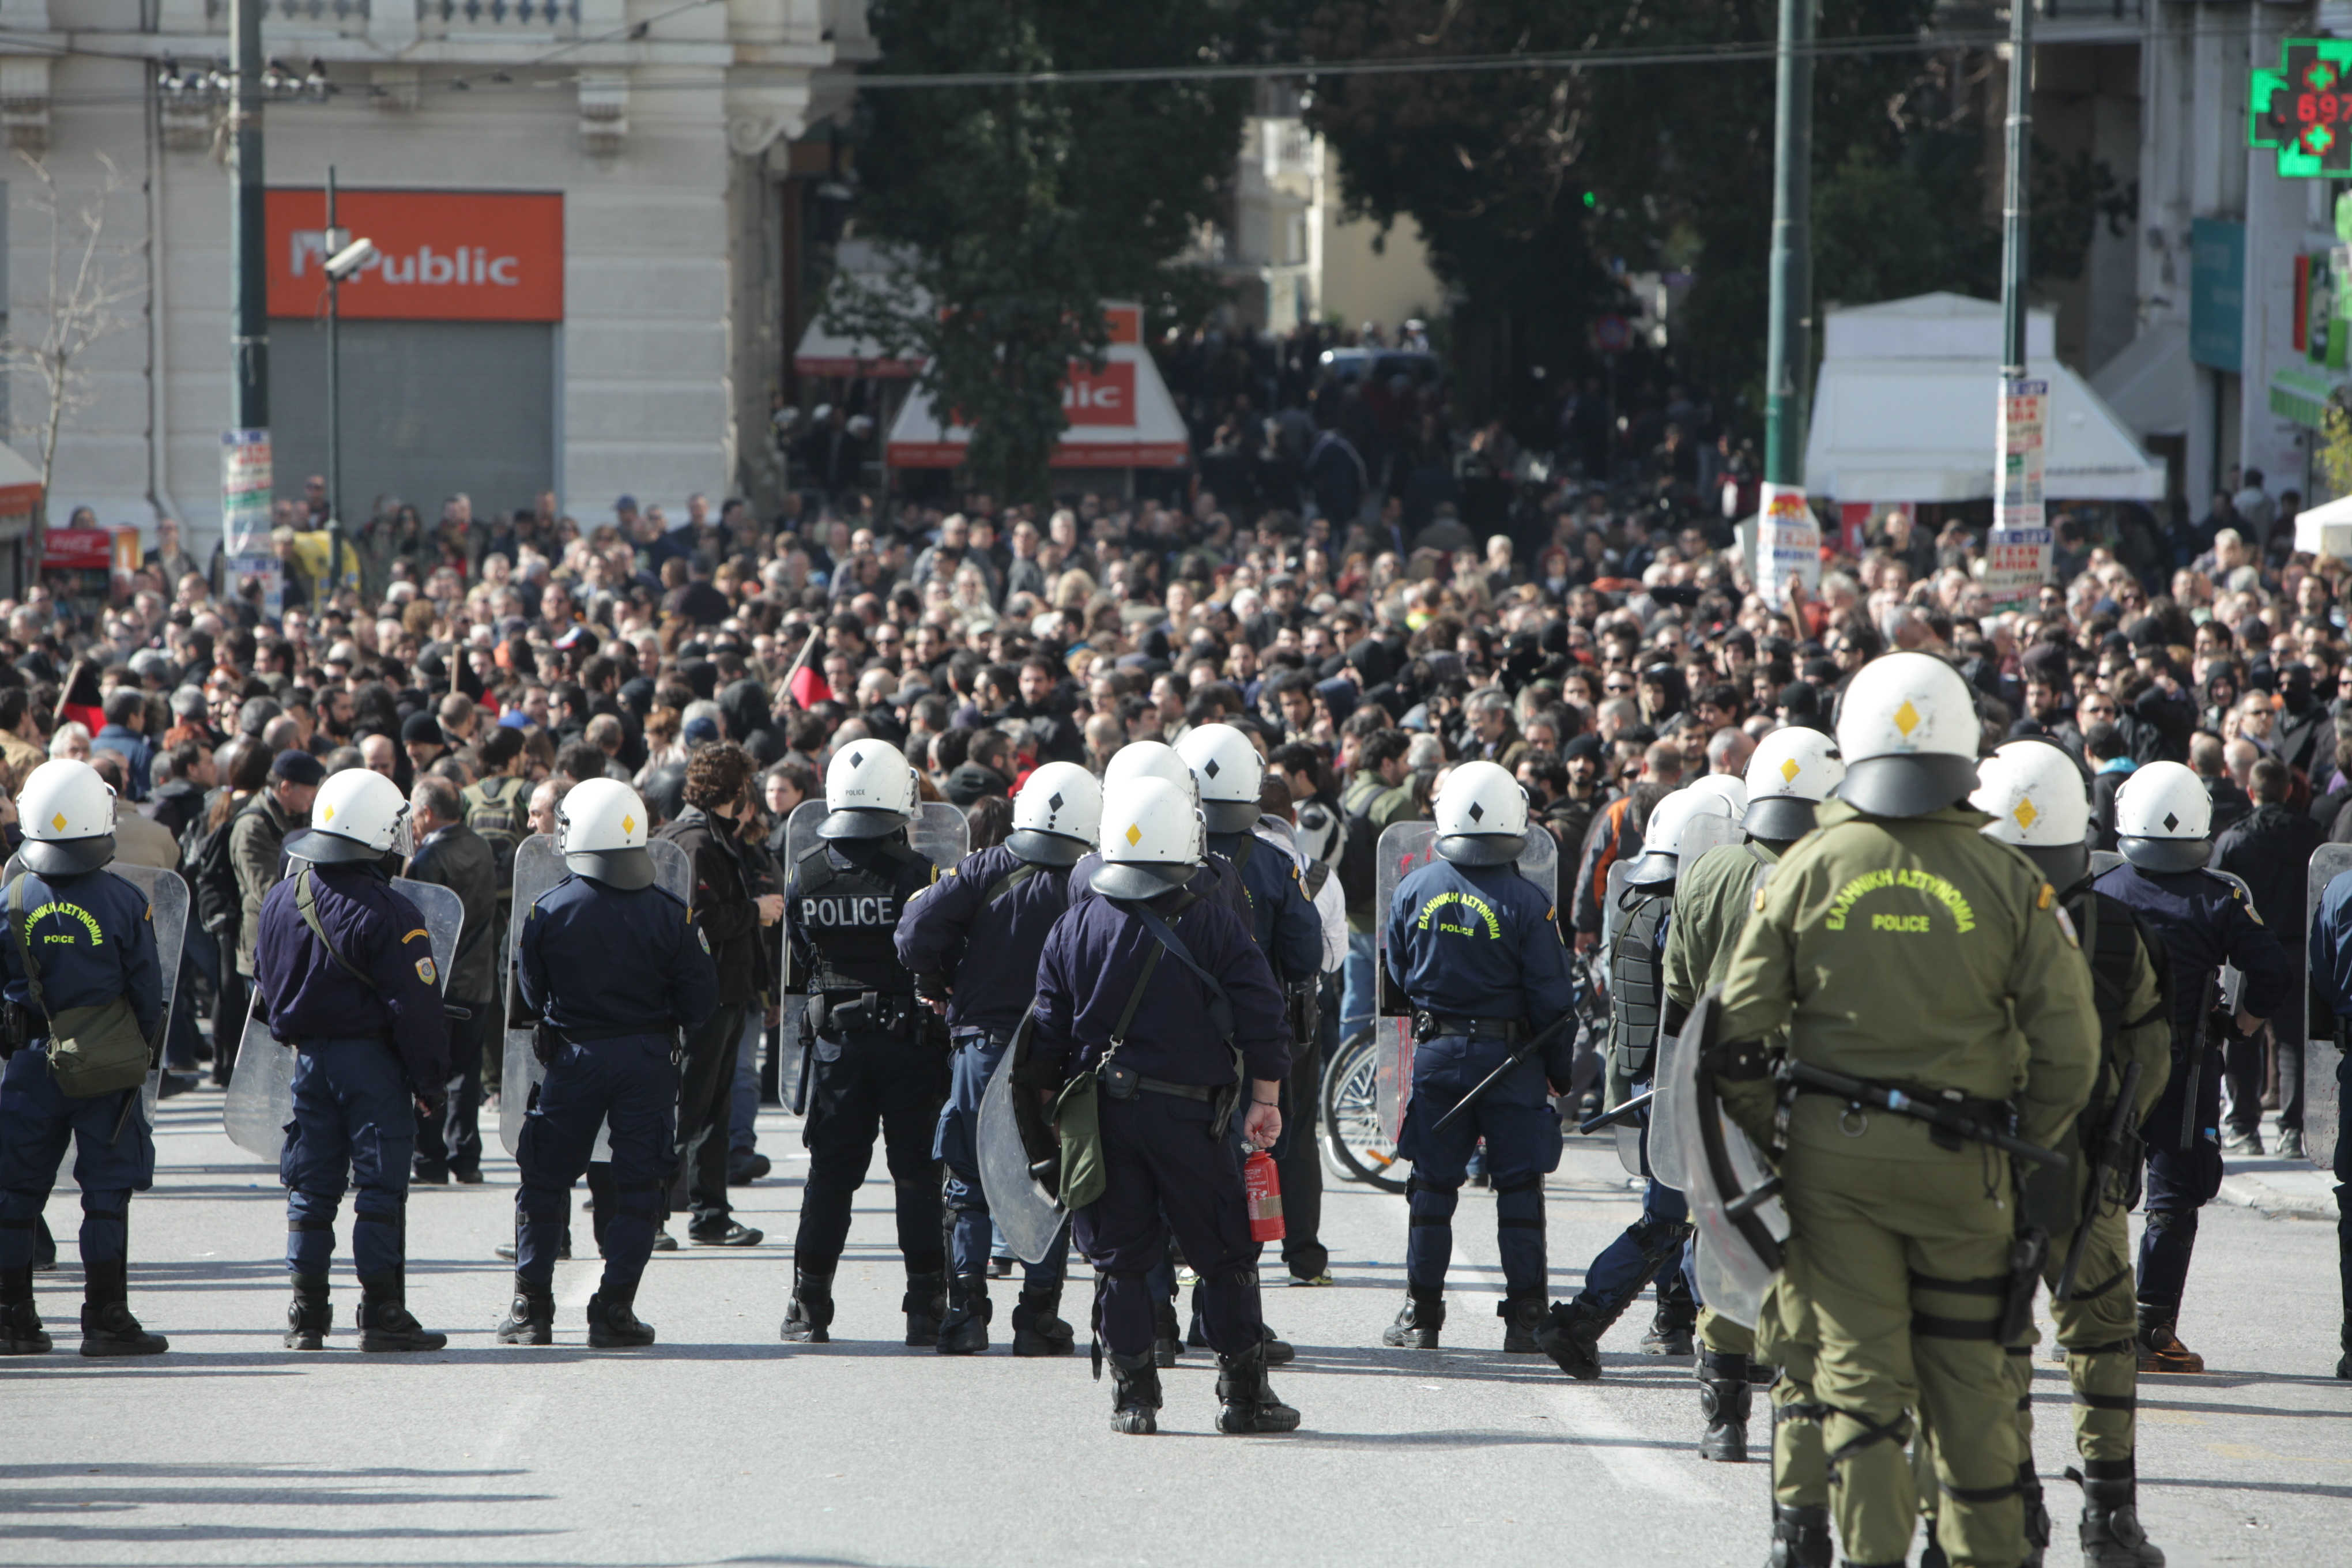 7,000 policemen on guard for the anniversary of the 'Polytechnic uprising'